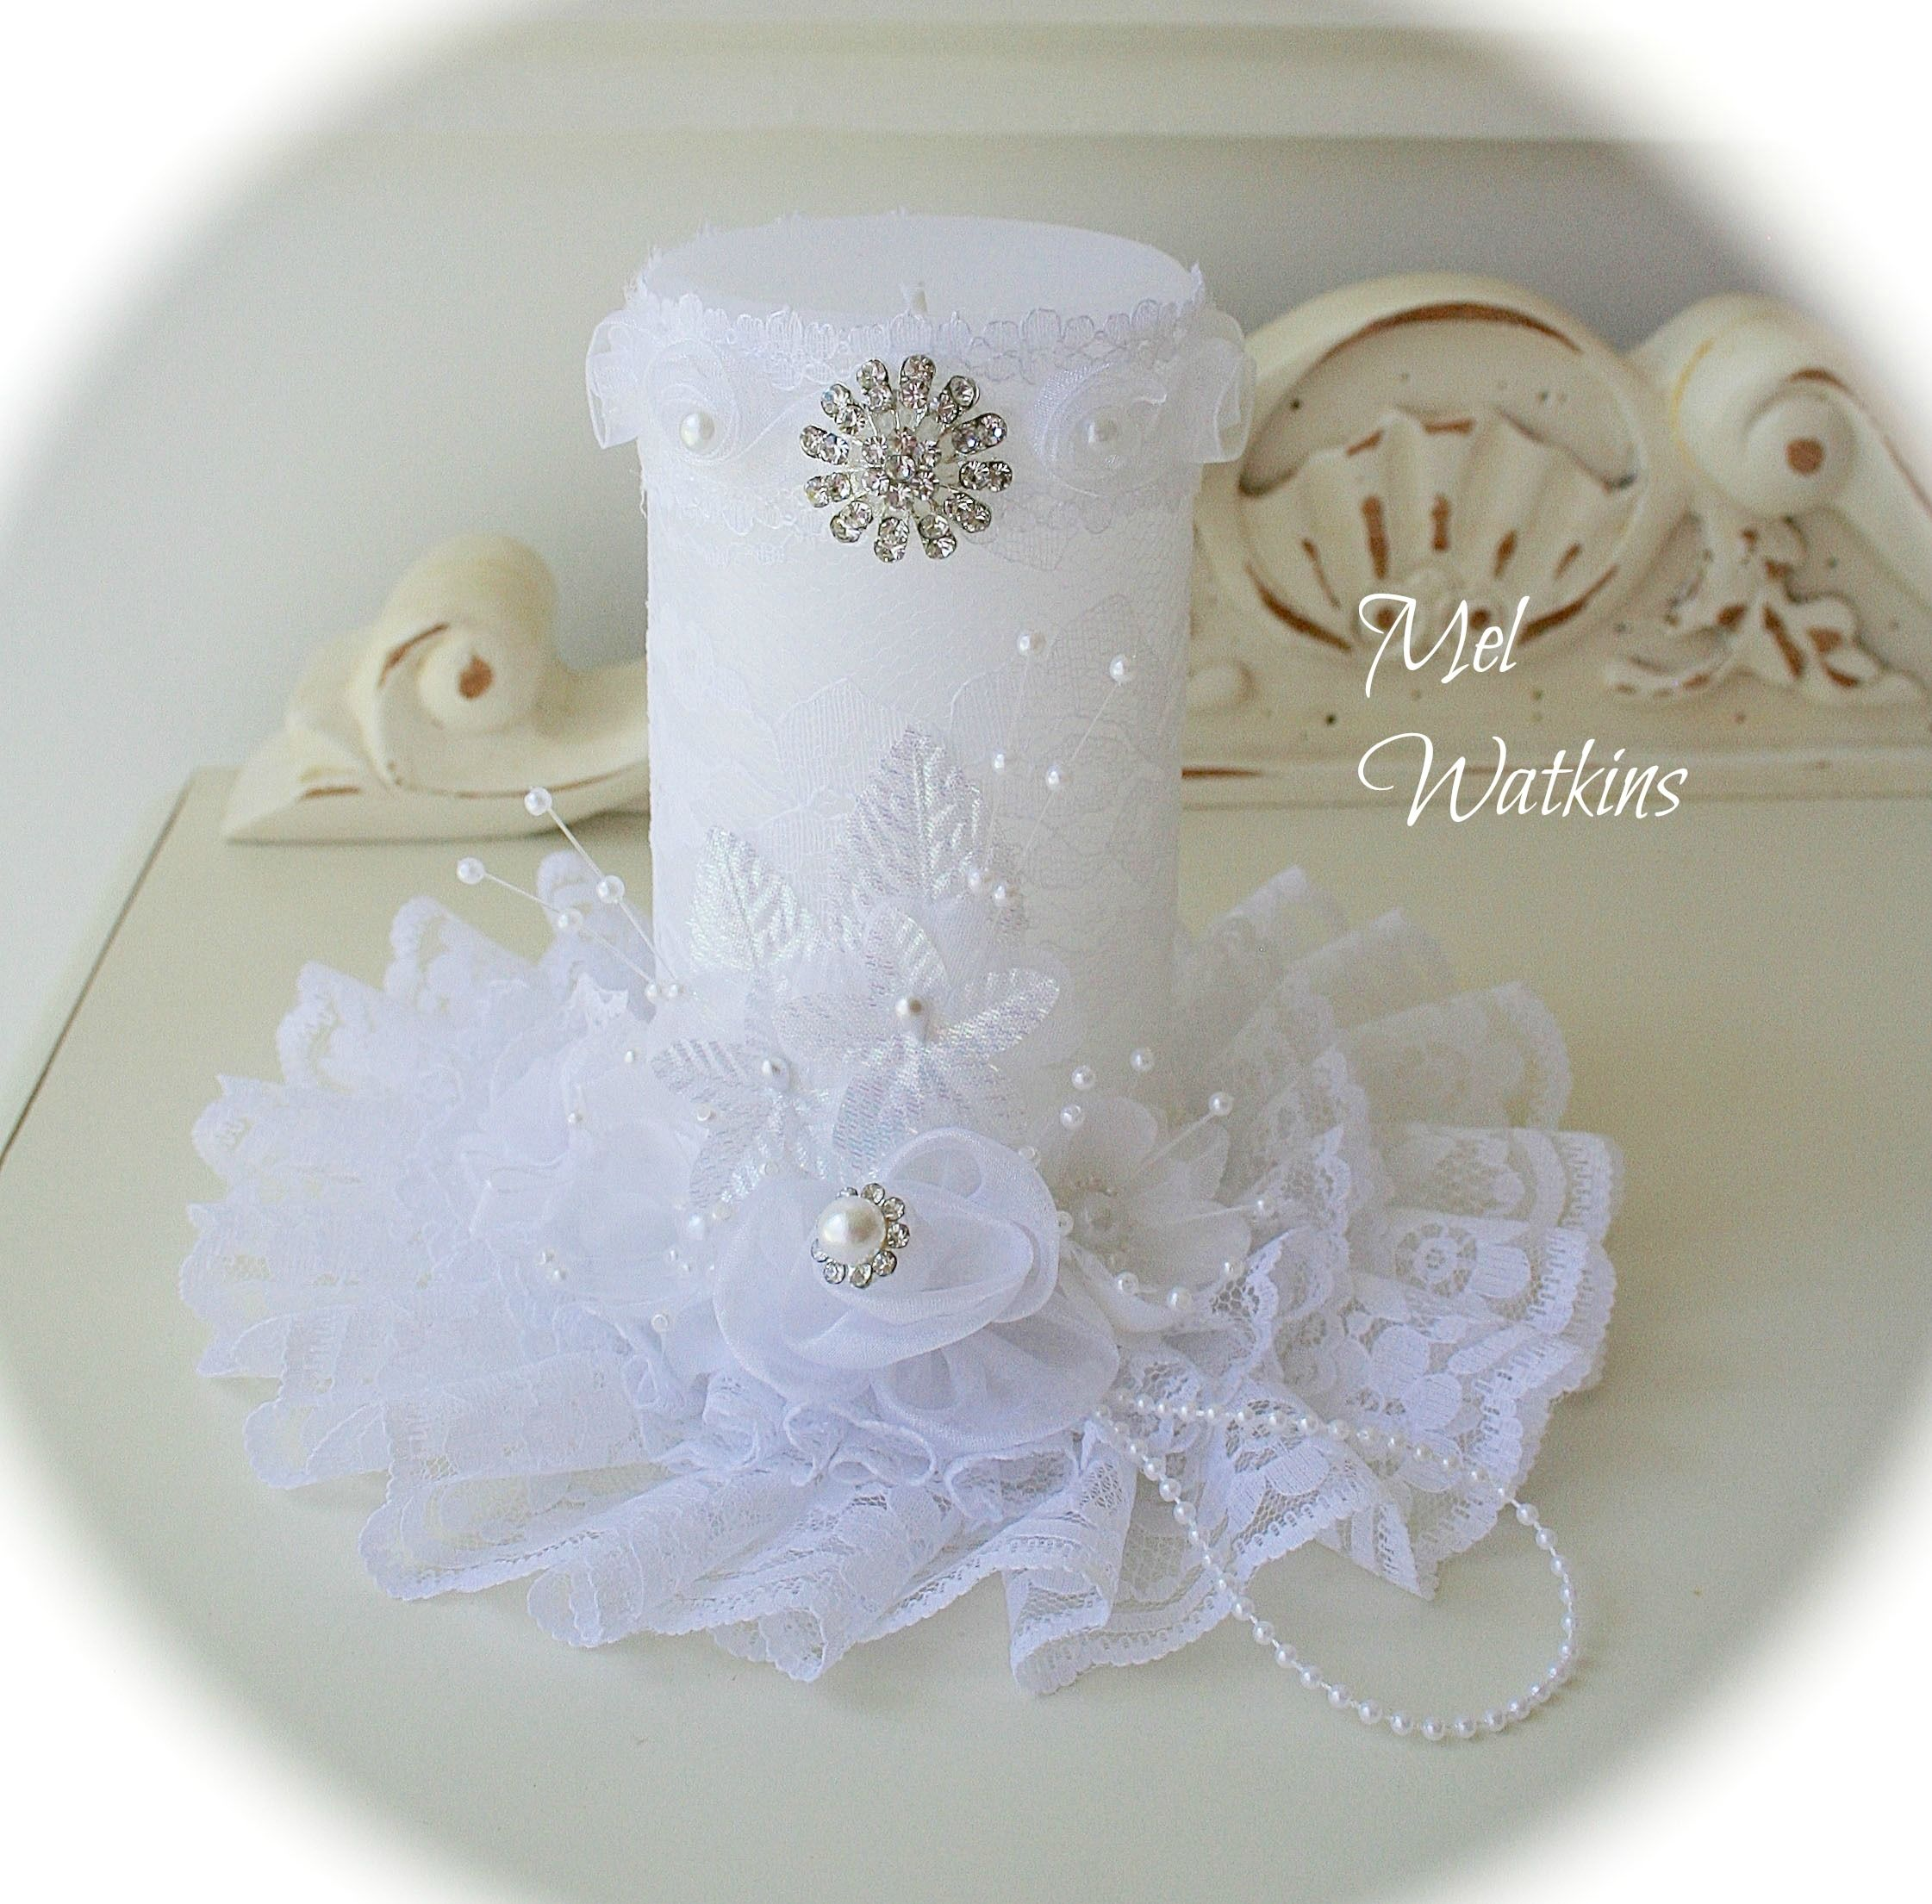 White lacy rhinestone shabby chic candle i made and sold